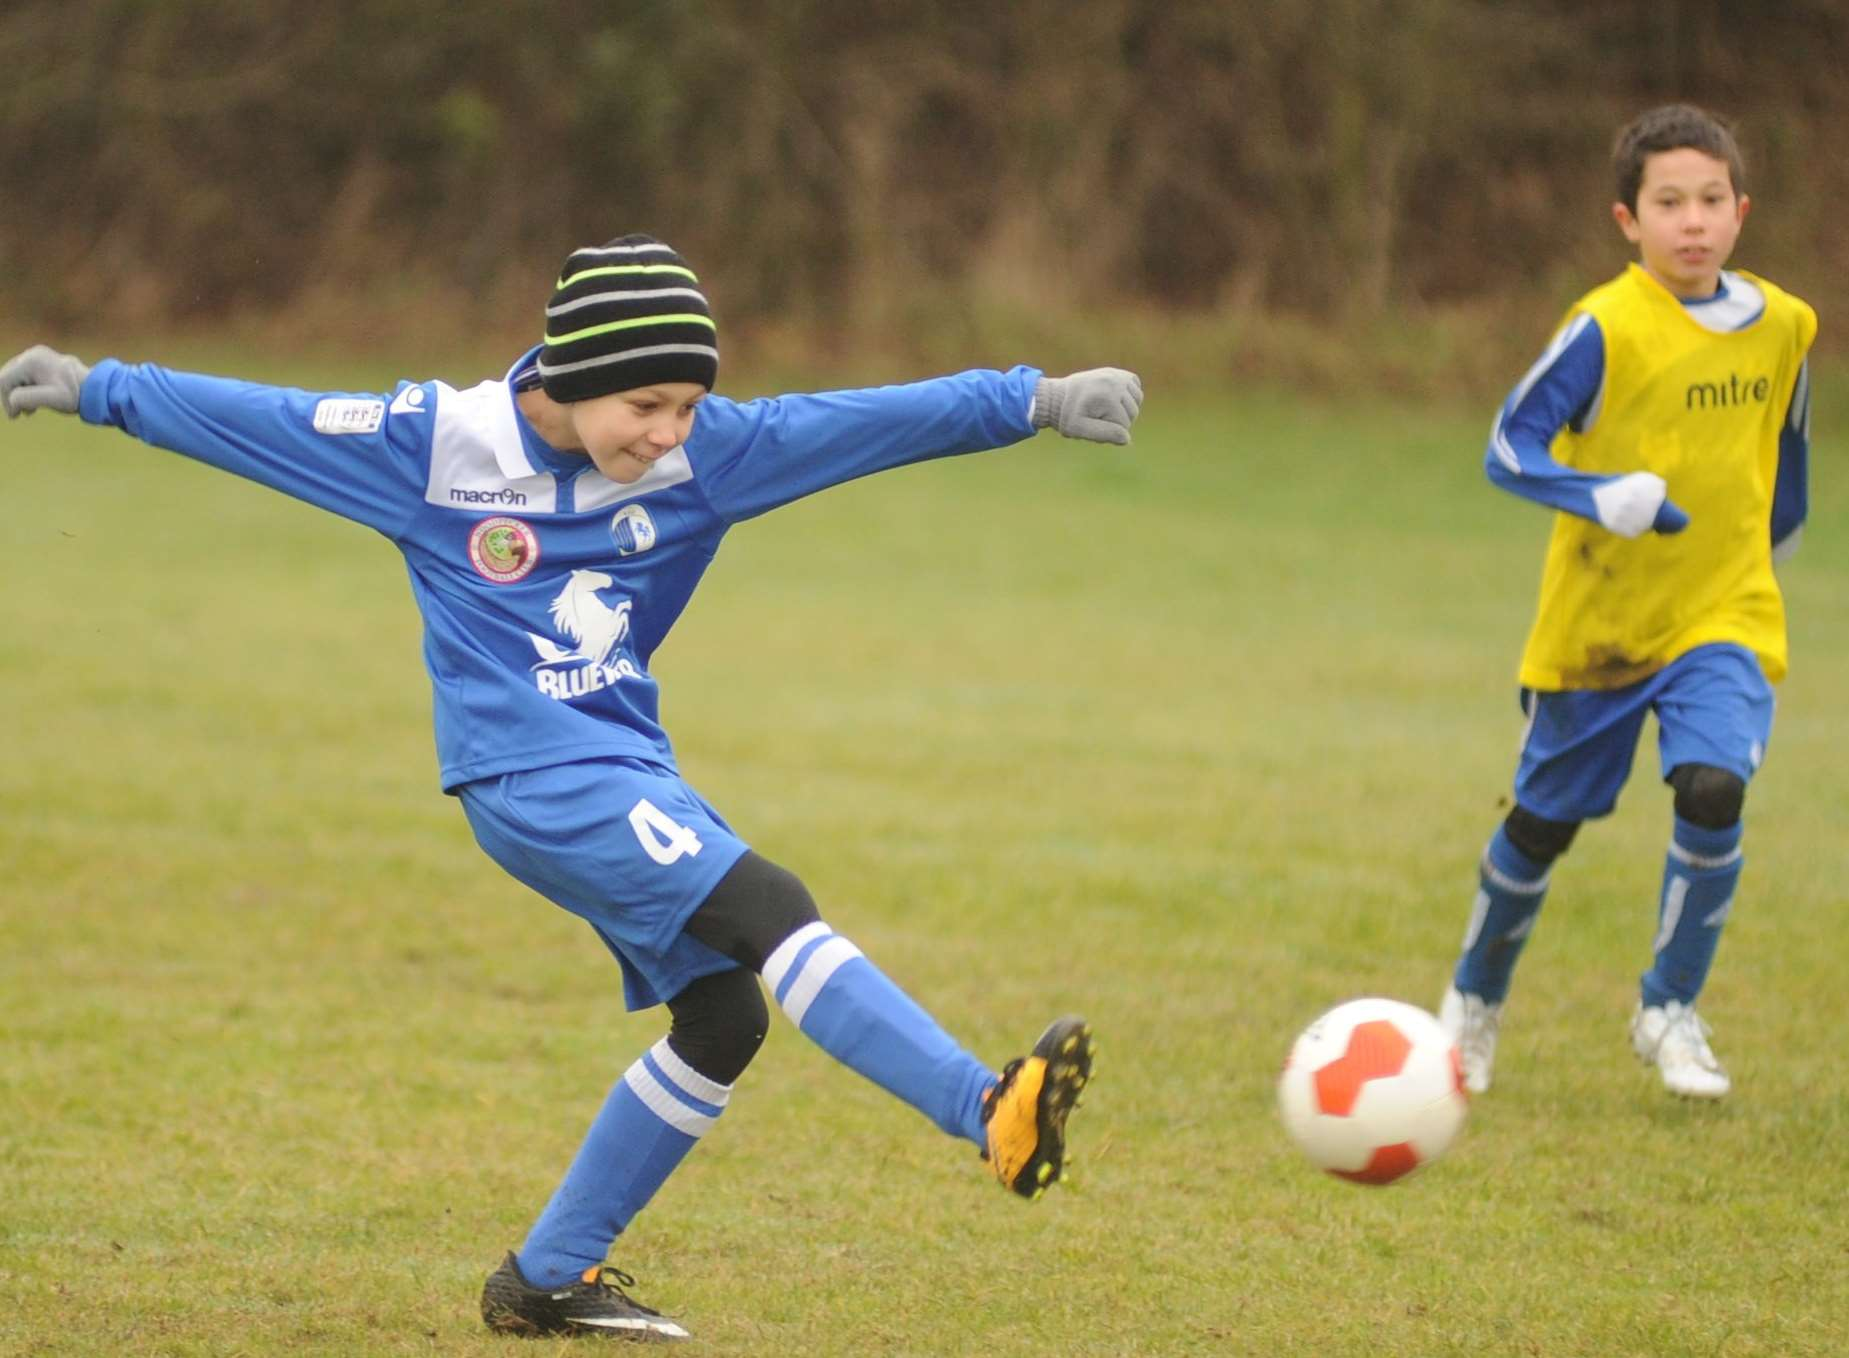 KFU Woodpecker under-9s try their luck against New Road Picture: Steve Crispe